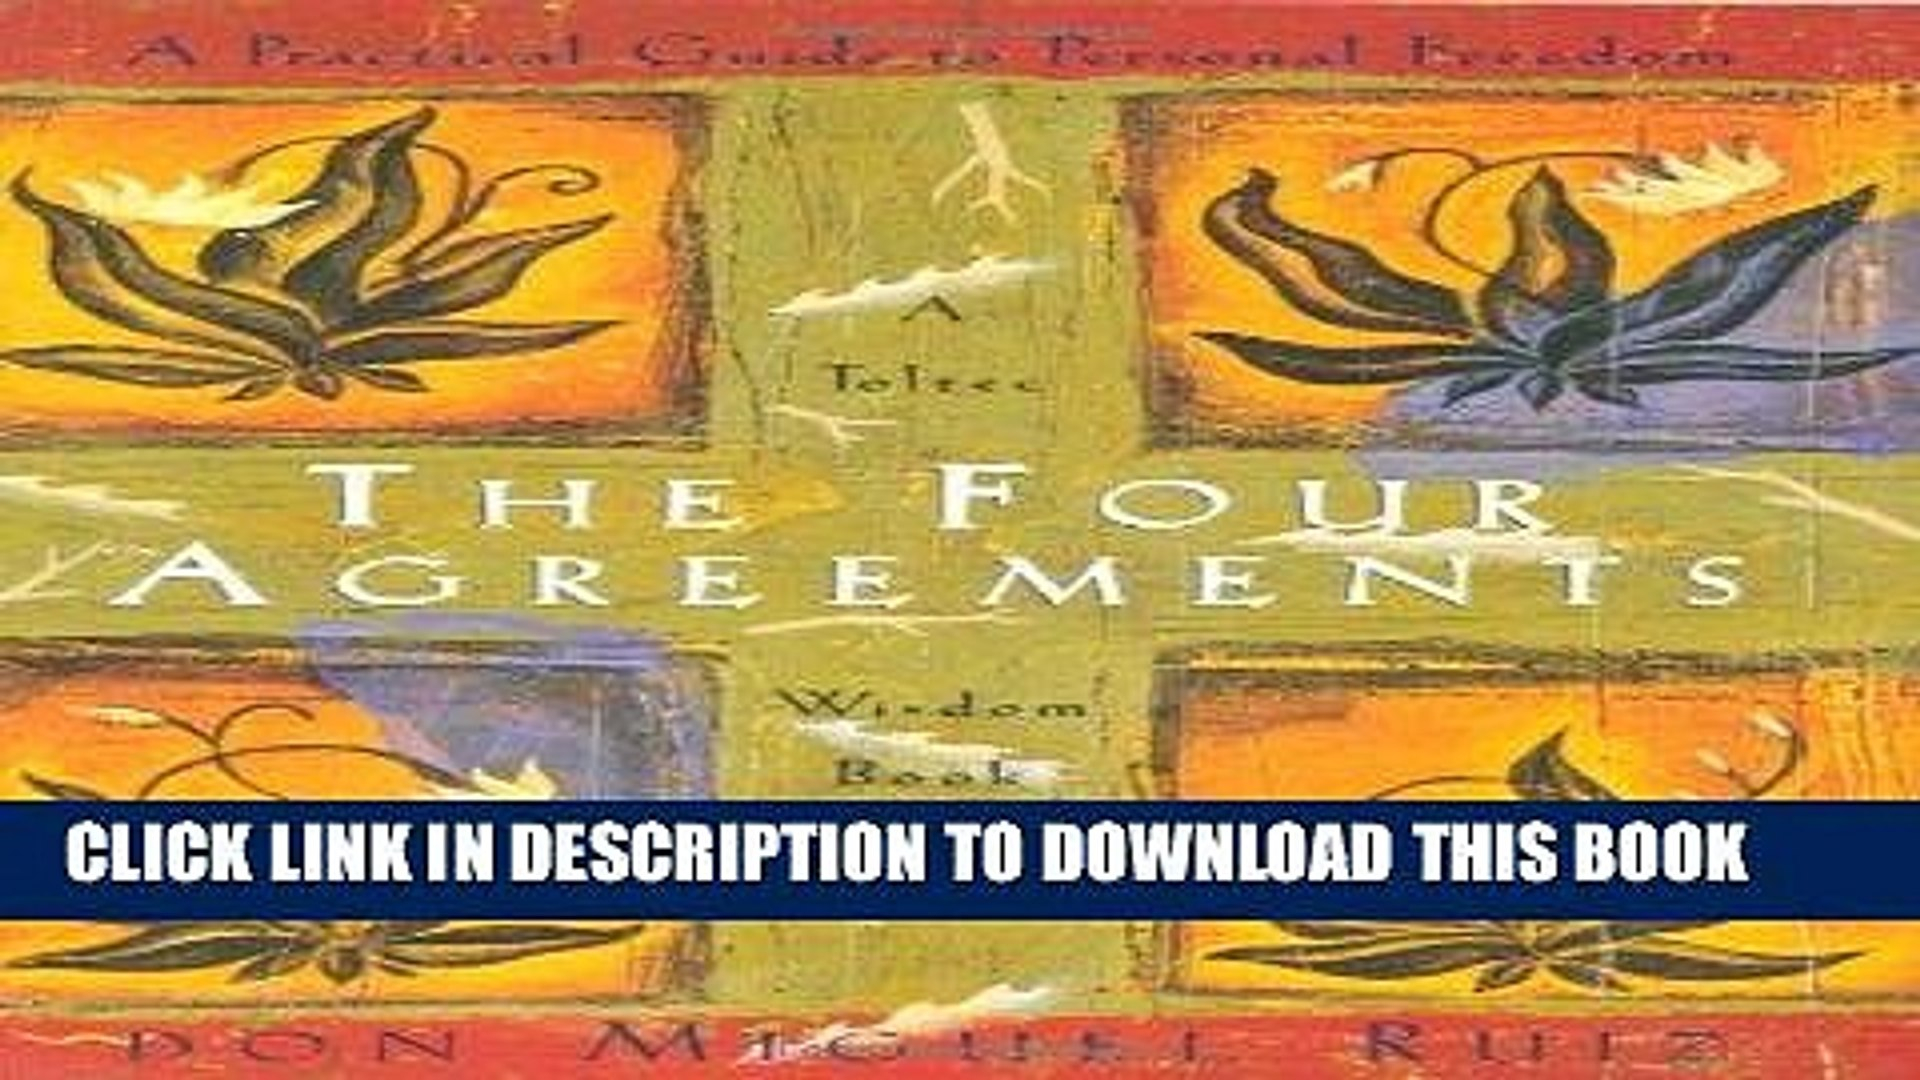 Four Agreements Book Free Download Best Seller The Four Agreements A Practical Guide To Personal Freedom A Toltec Wisdom Book Free